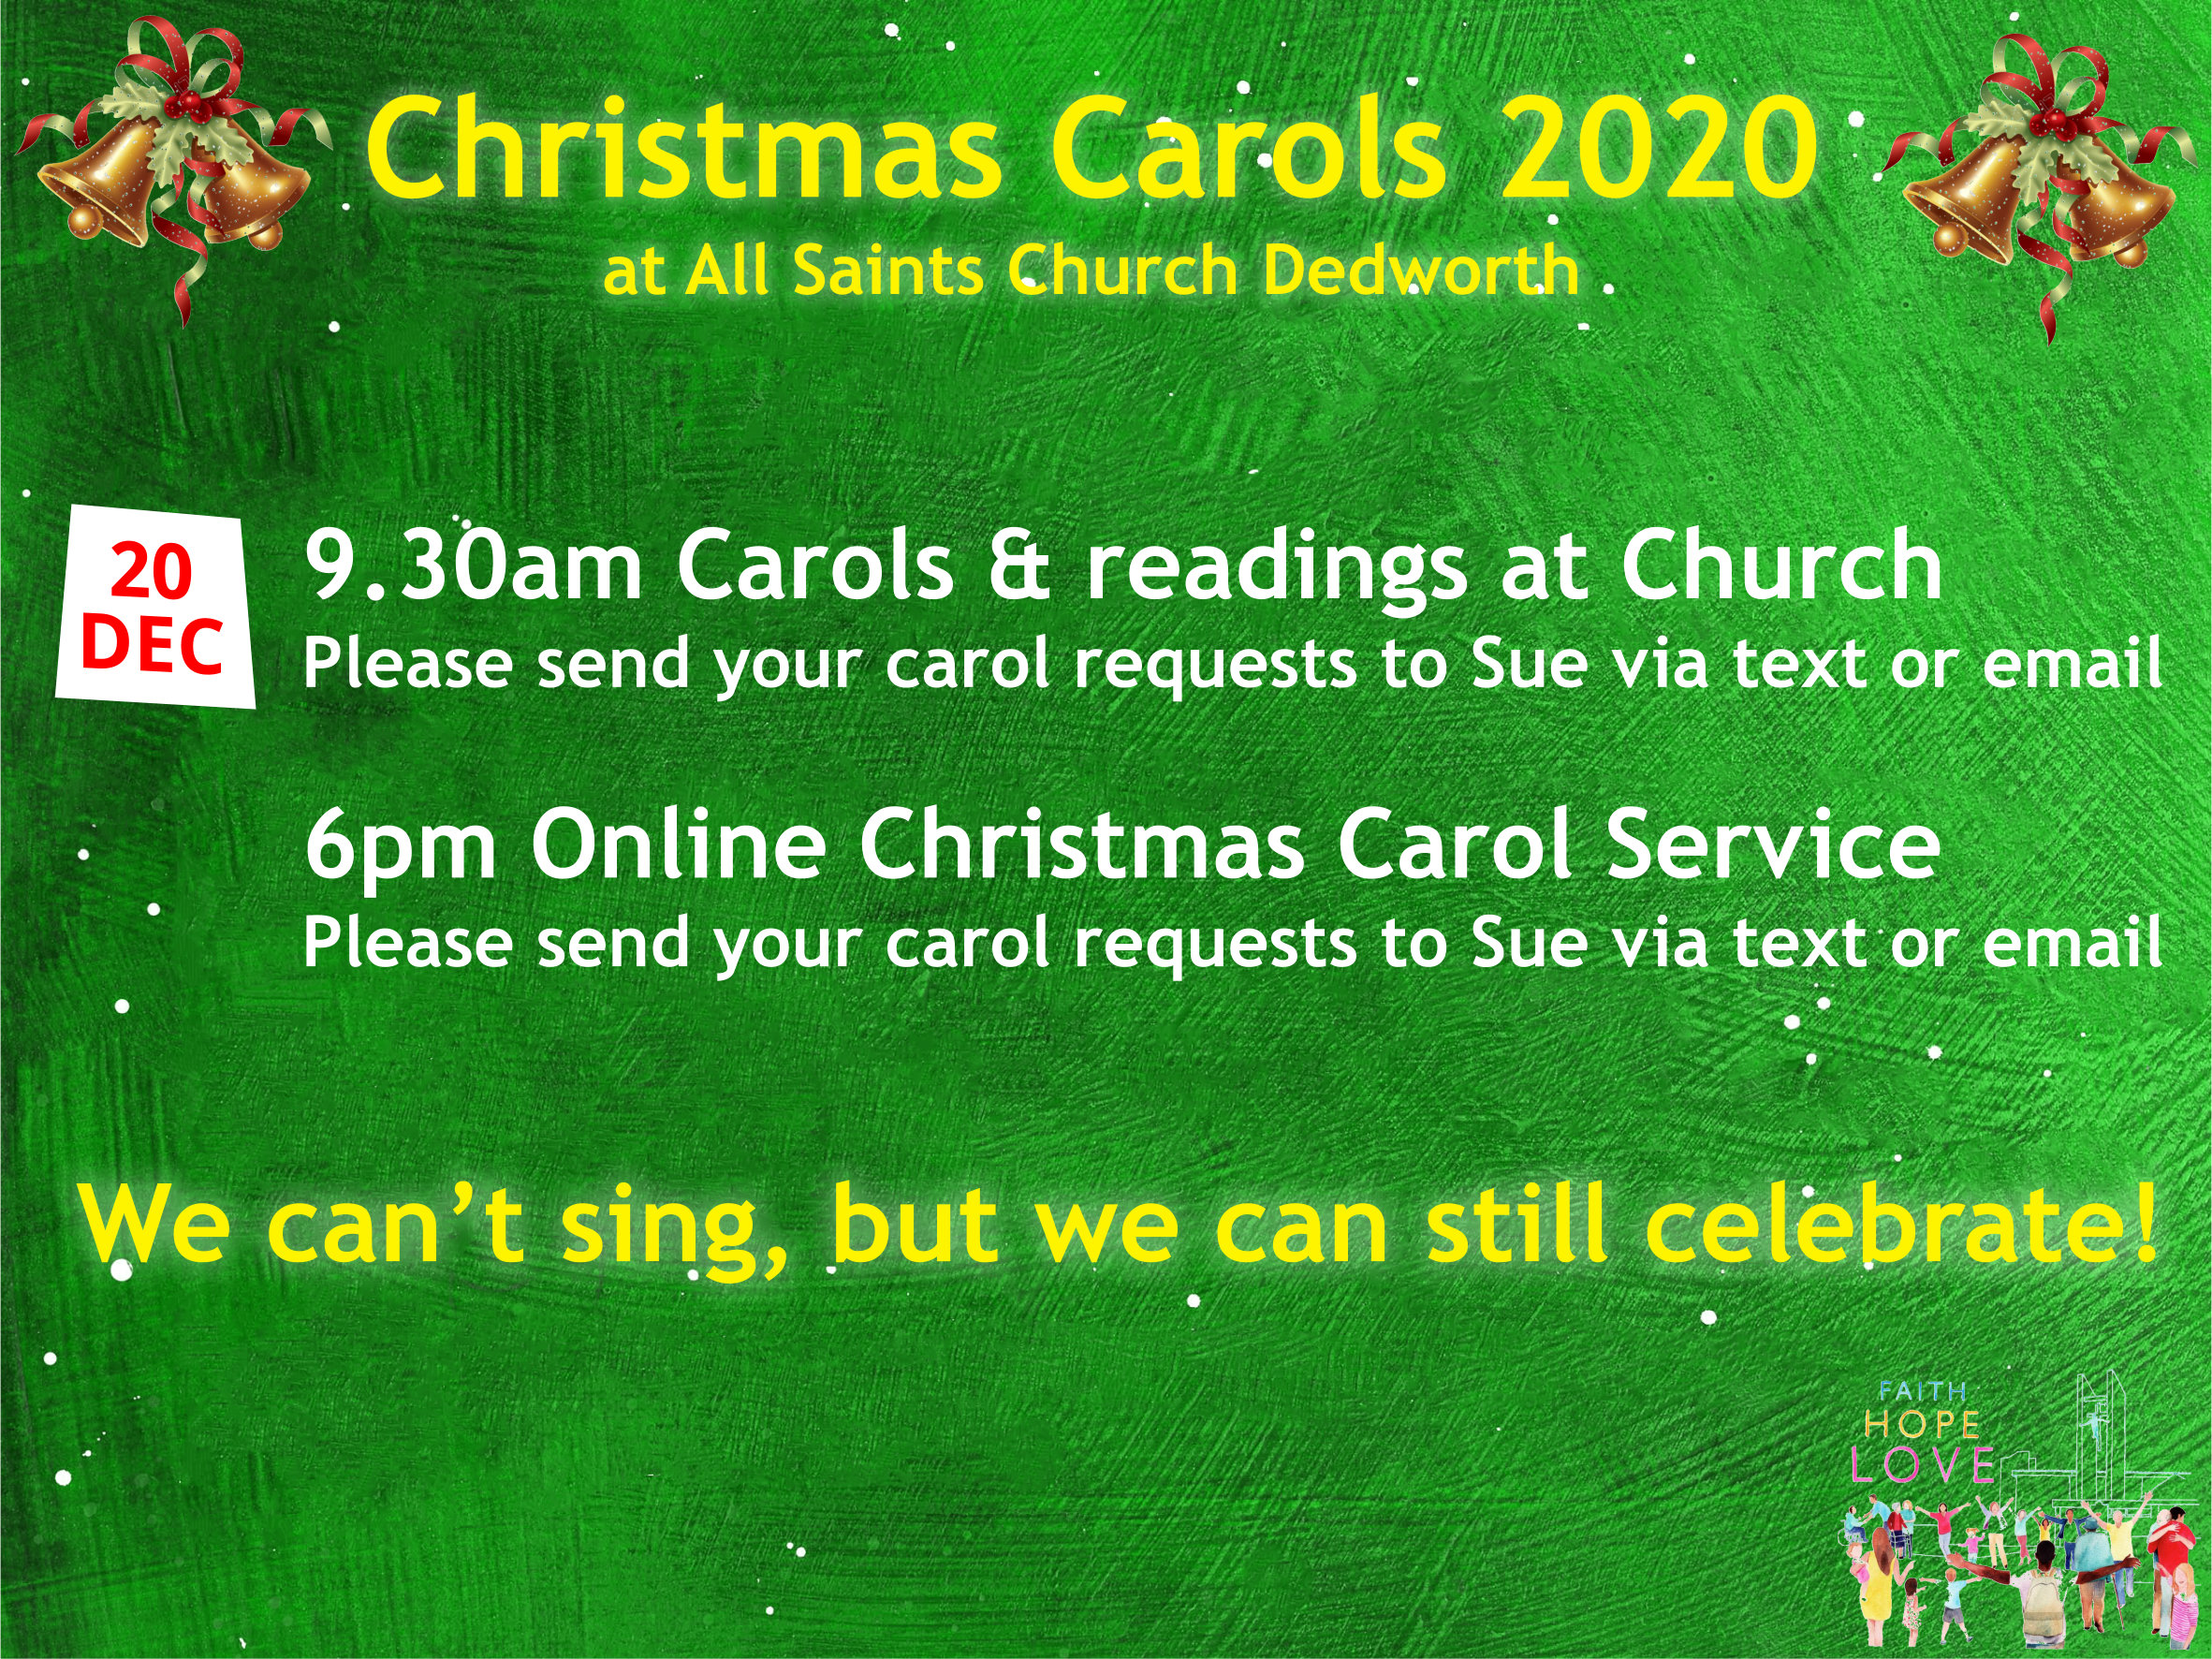 Christmas Carols 2020 - NOW CANCELLED